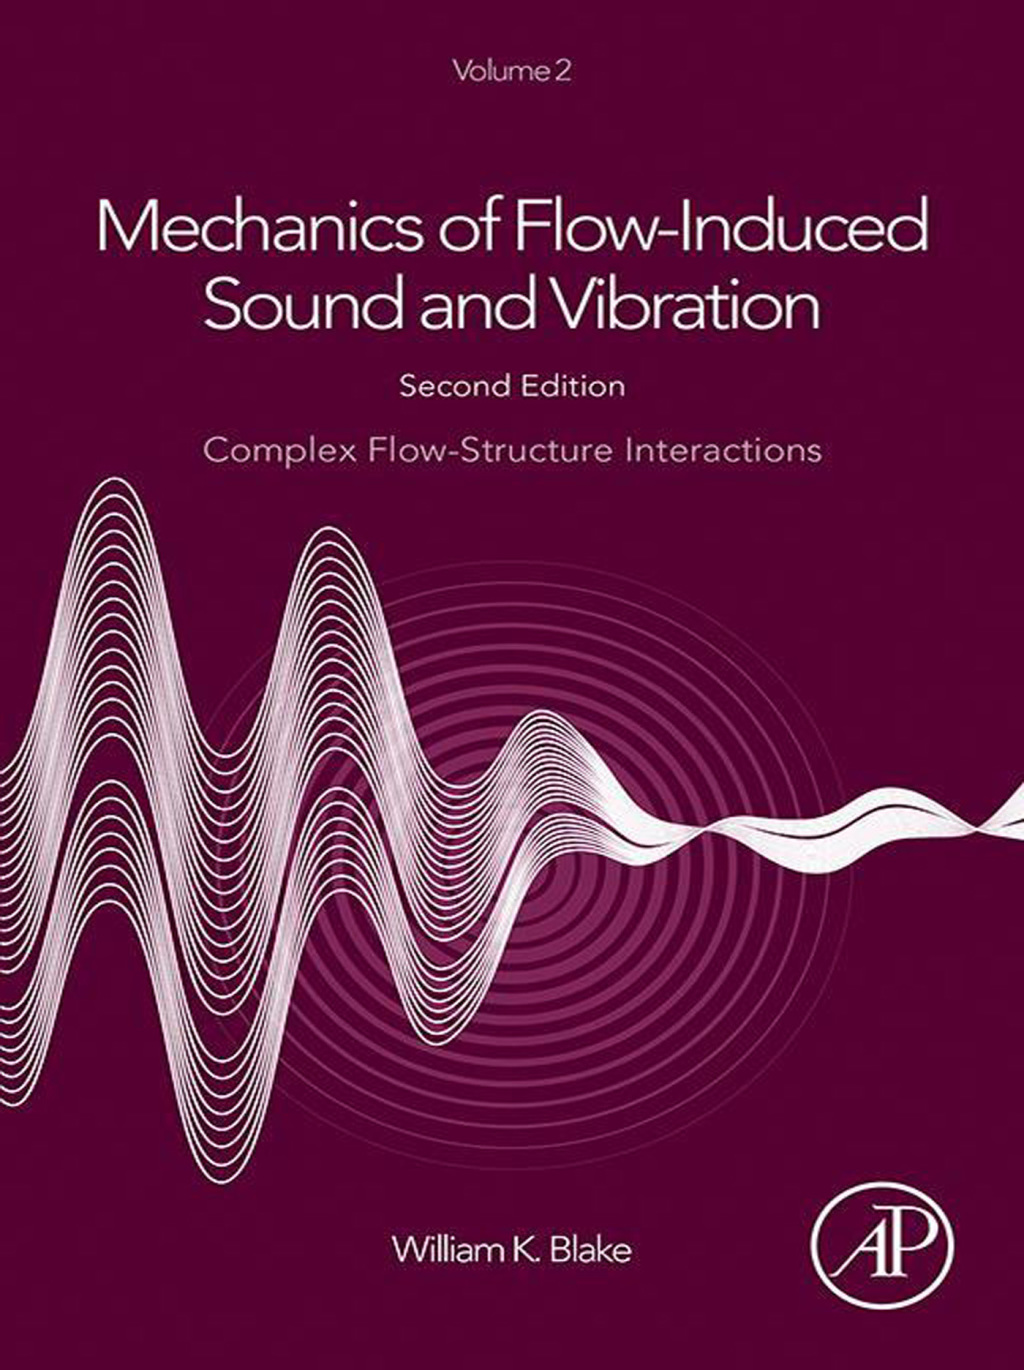 Mechanics of Flow-Induced Sound and Vibration, Volume 2 (ebook) eBooks